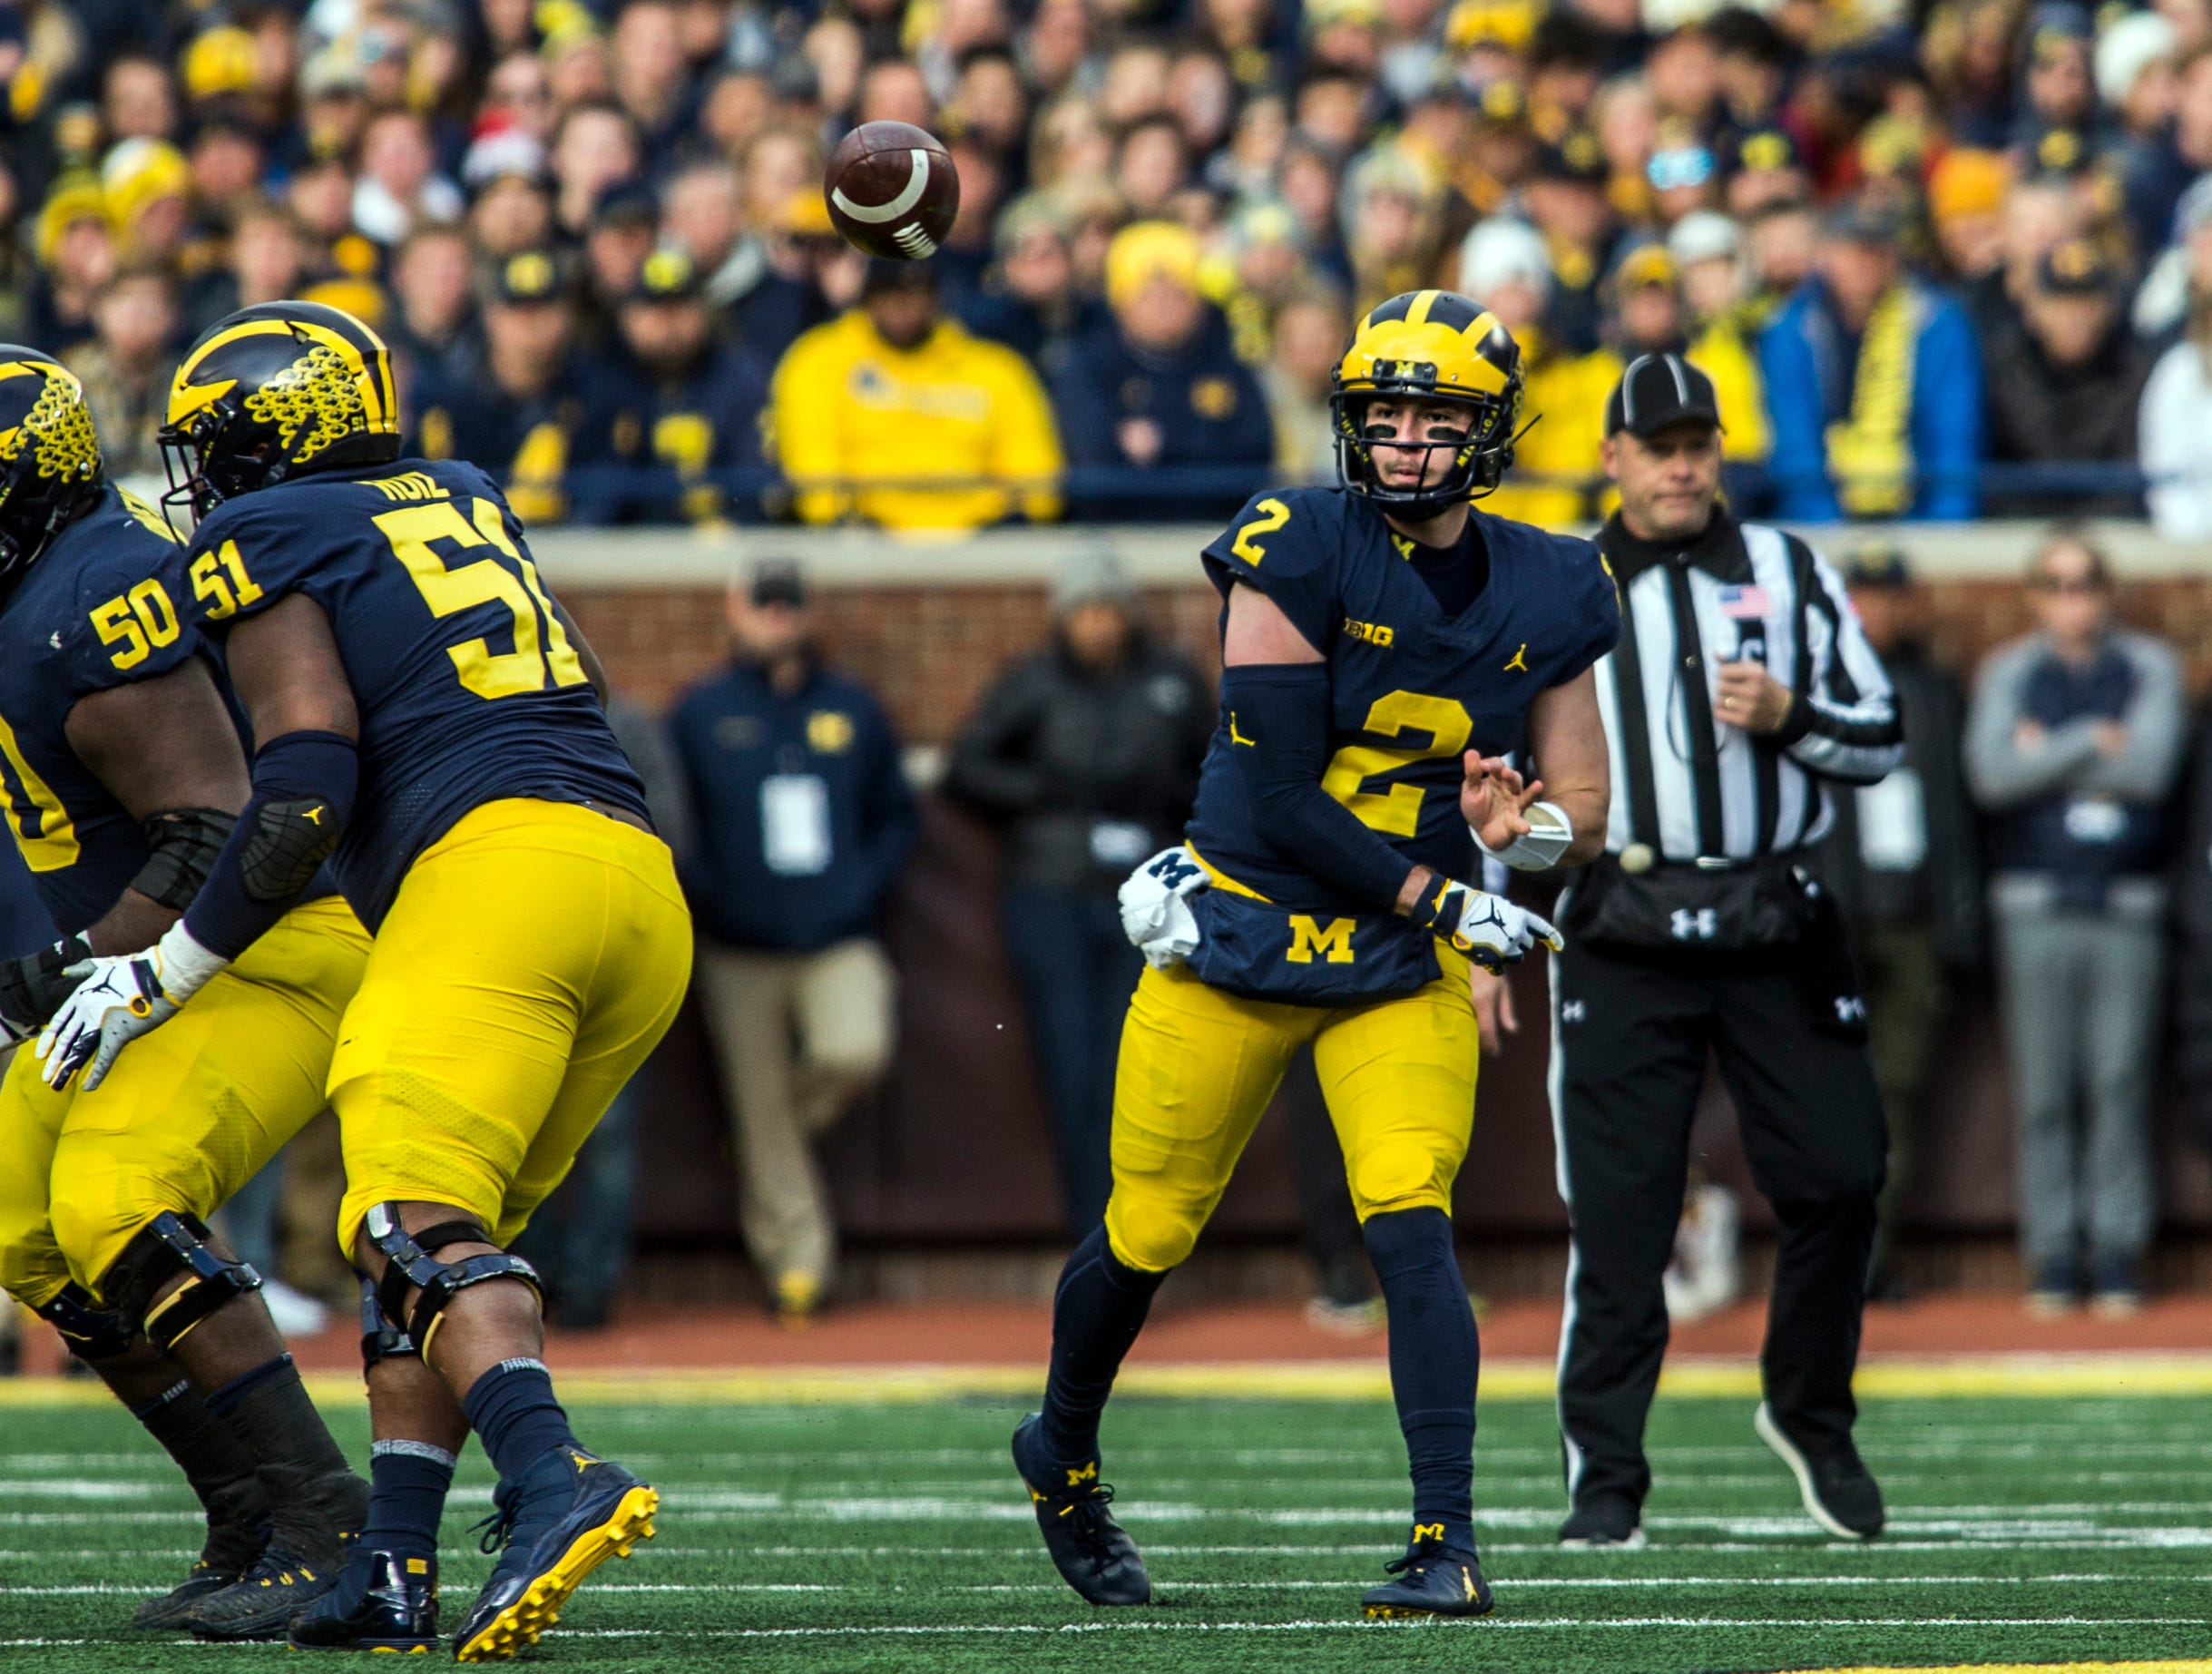 Michigan quarterback Shea Patterson (2) throws a pass in the first quarter of an NCAA college football game against Penn State in Ann Arbor, Mich., Saturday, Nov. 3, 2018. (AP Photo/Tony Ding)